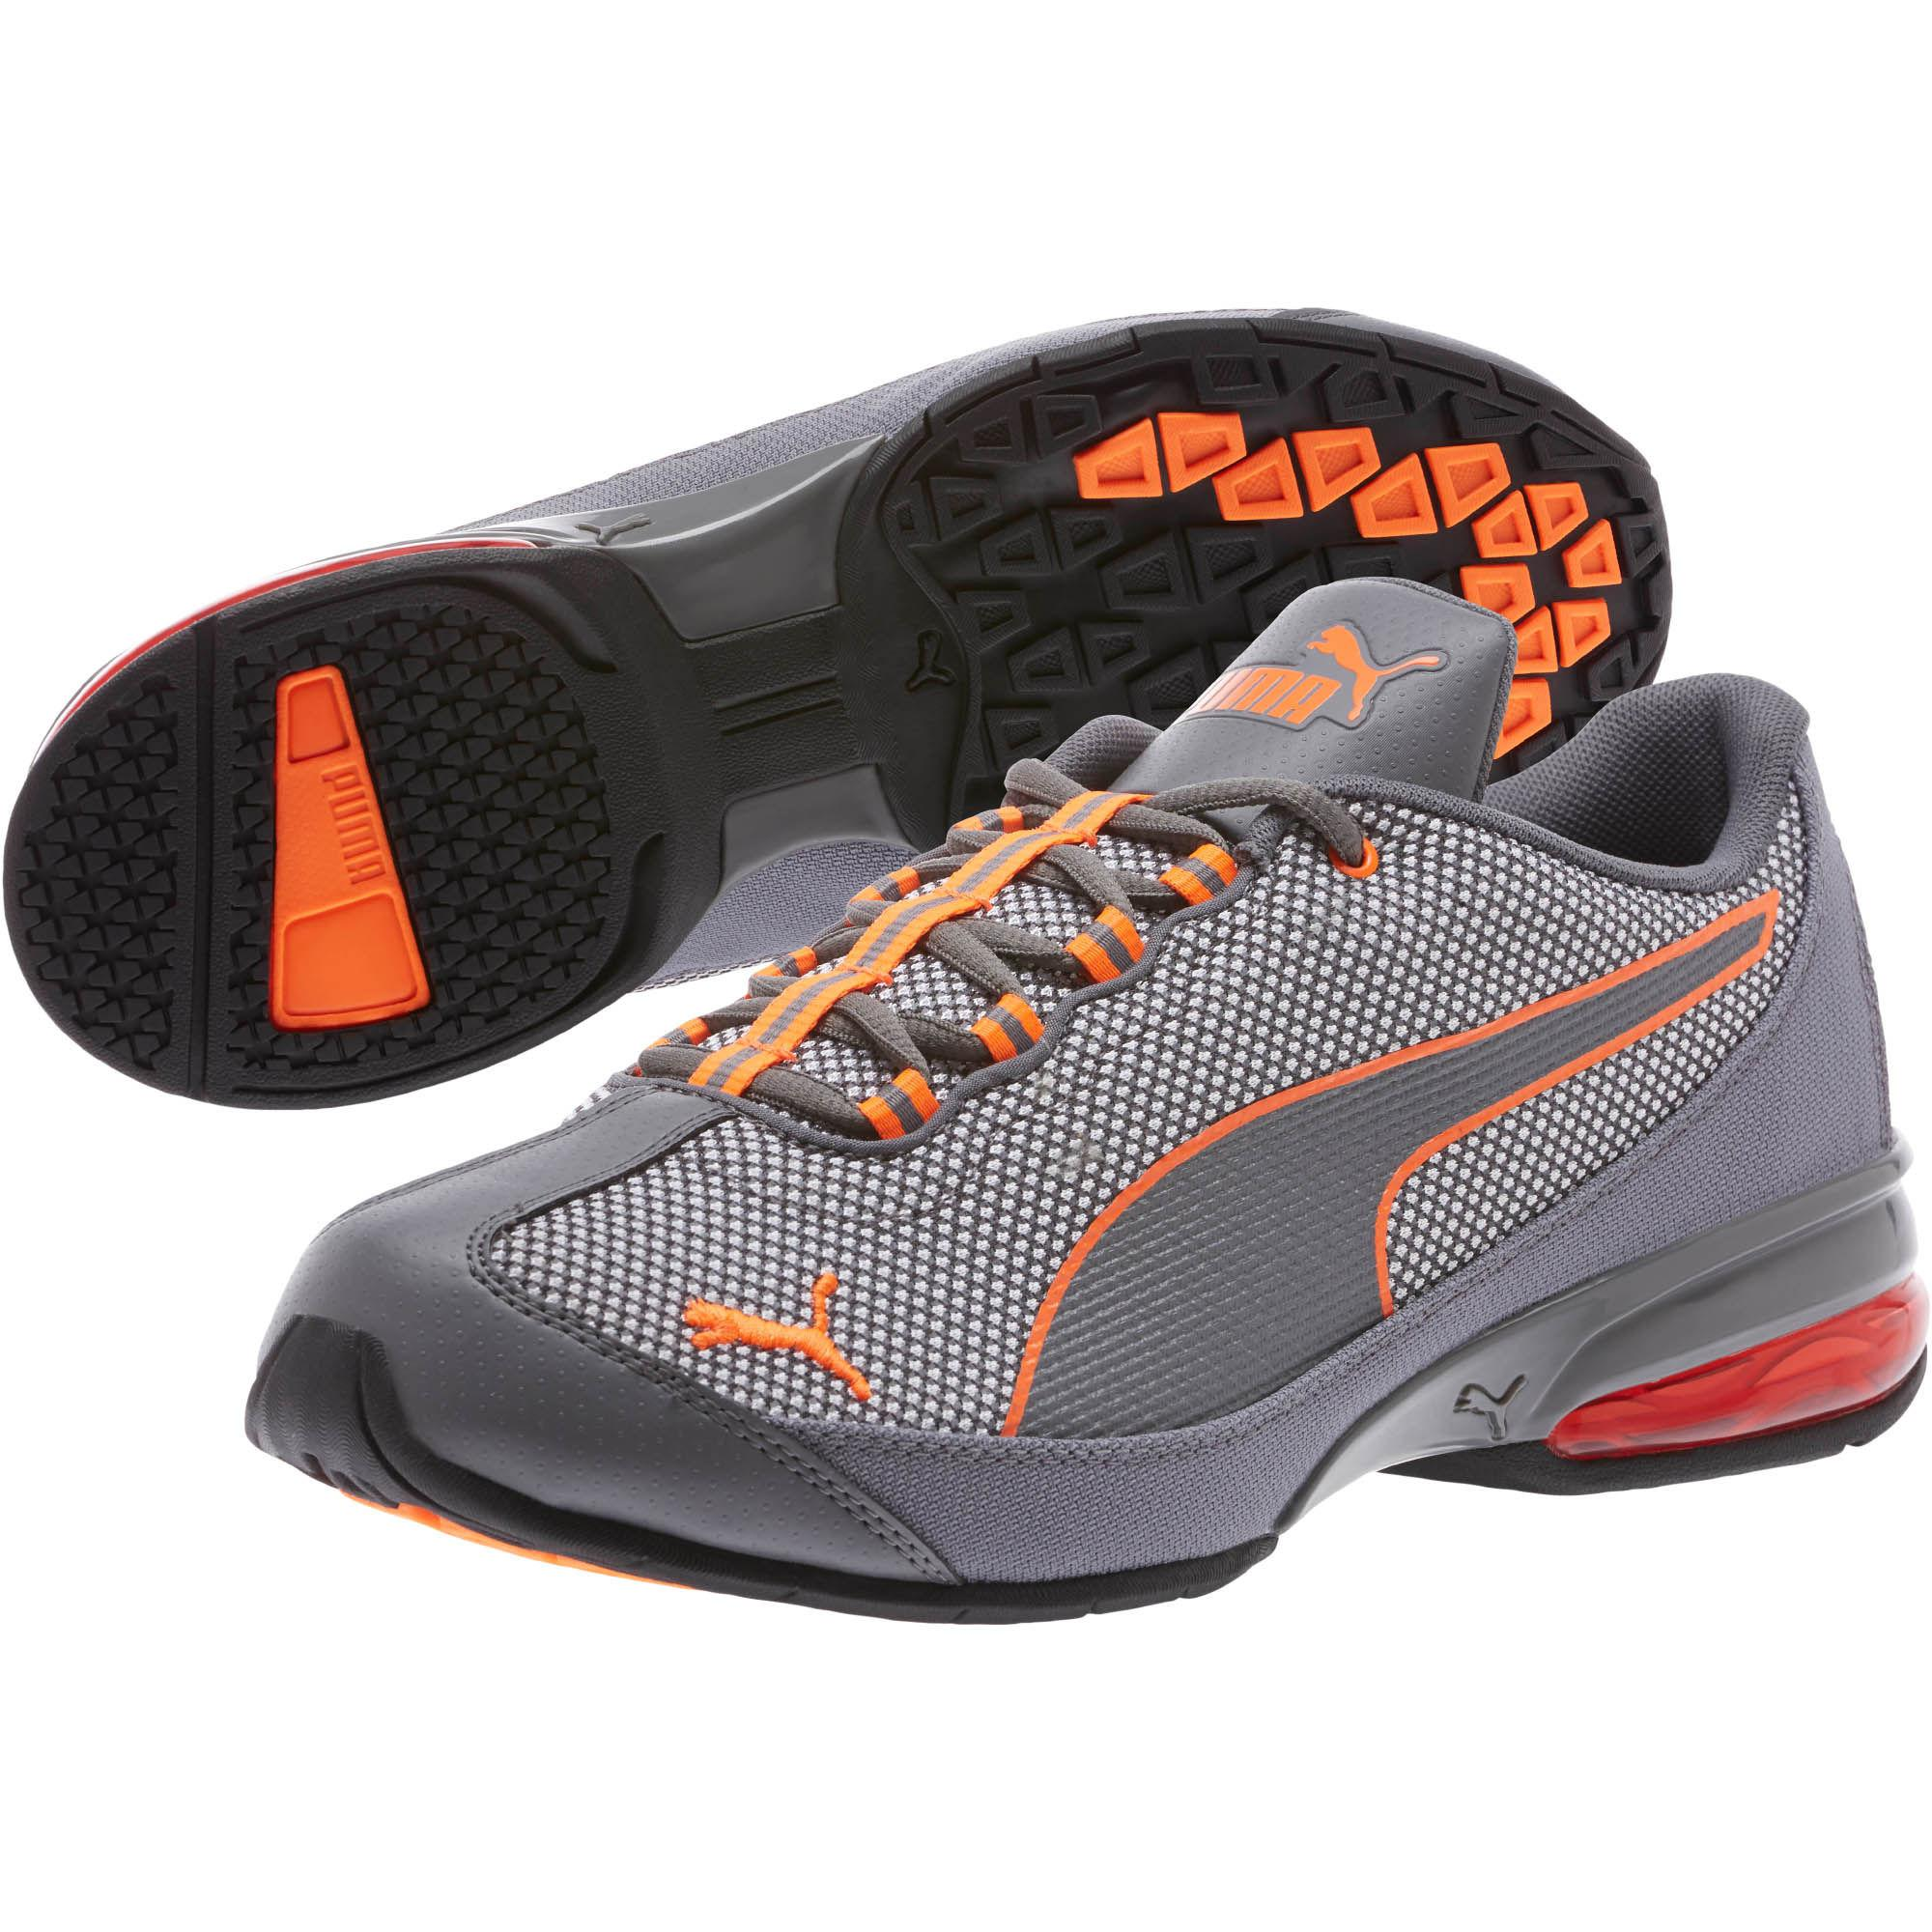 3b24ab7b408ebc Lyst - PUMA Reverb Knit Men s Running Shoes for Men